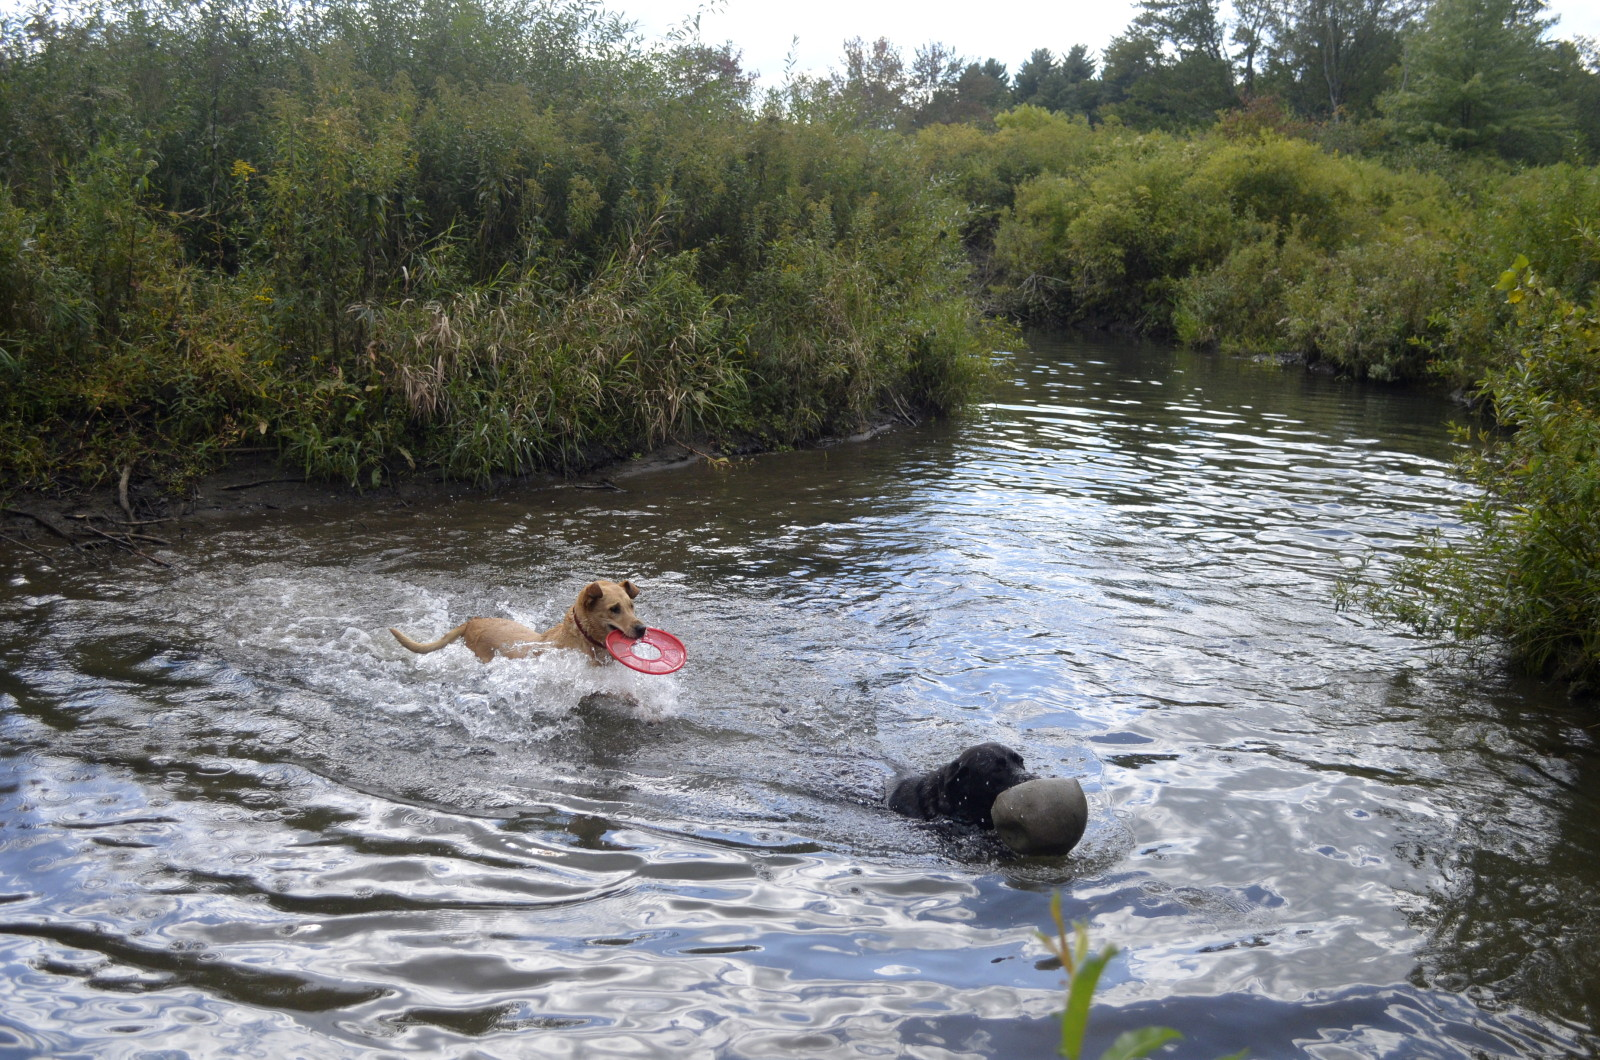 The river in my parent's backyard, now enjoyed by a new generation of dogs (Ubu & Willow). (Emma Brinley Buckley)